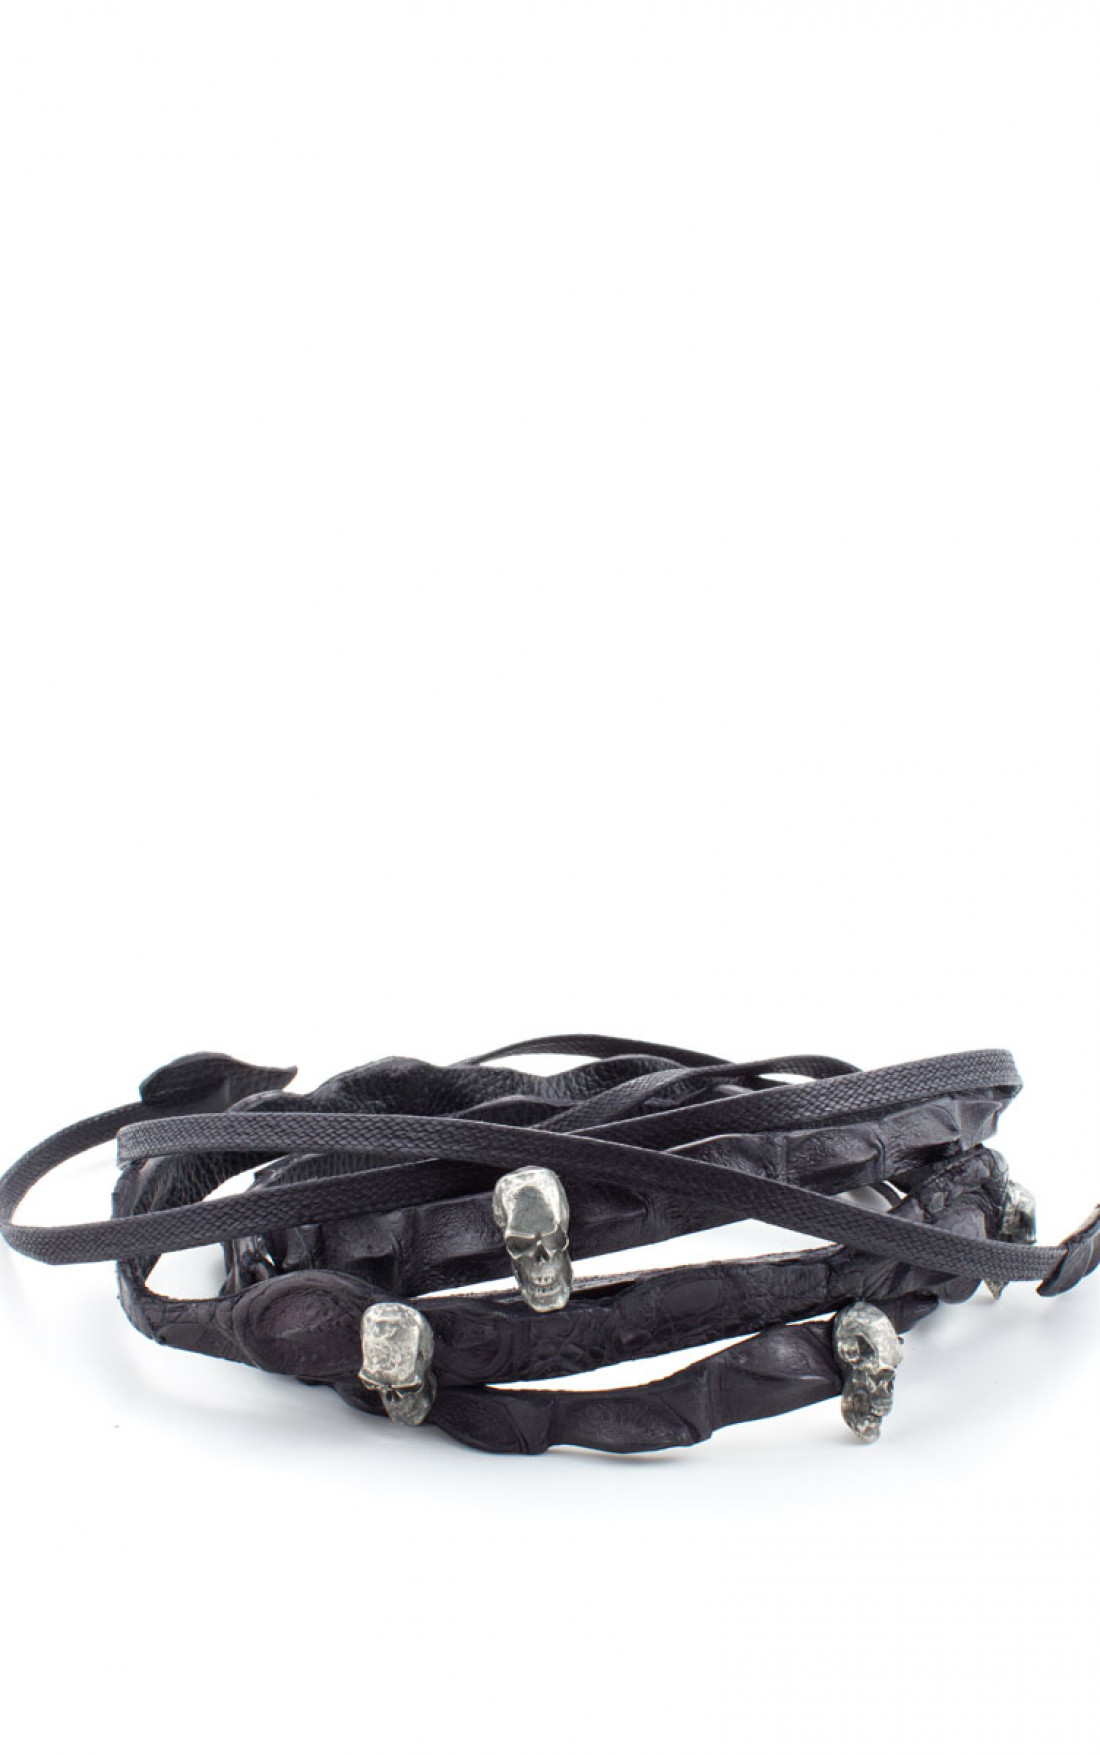 Scunzani Ivo - Black Crocodile Double Length Skull Belt (Dbl.Skull)